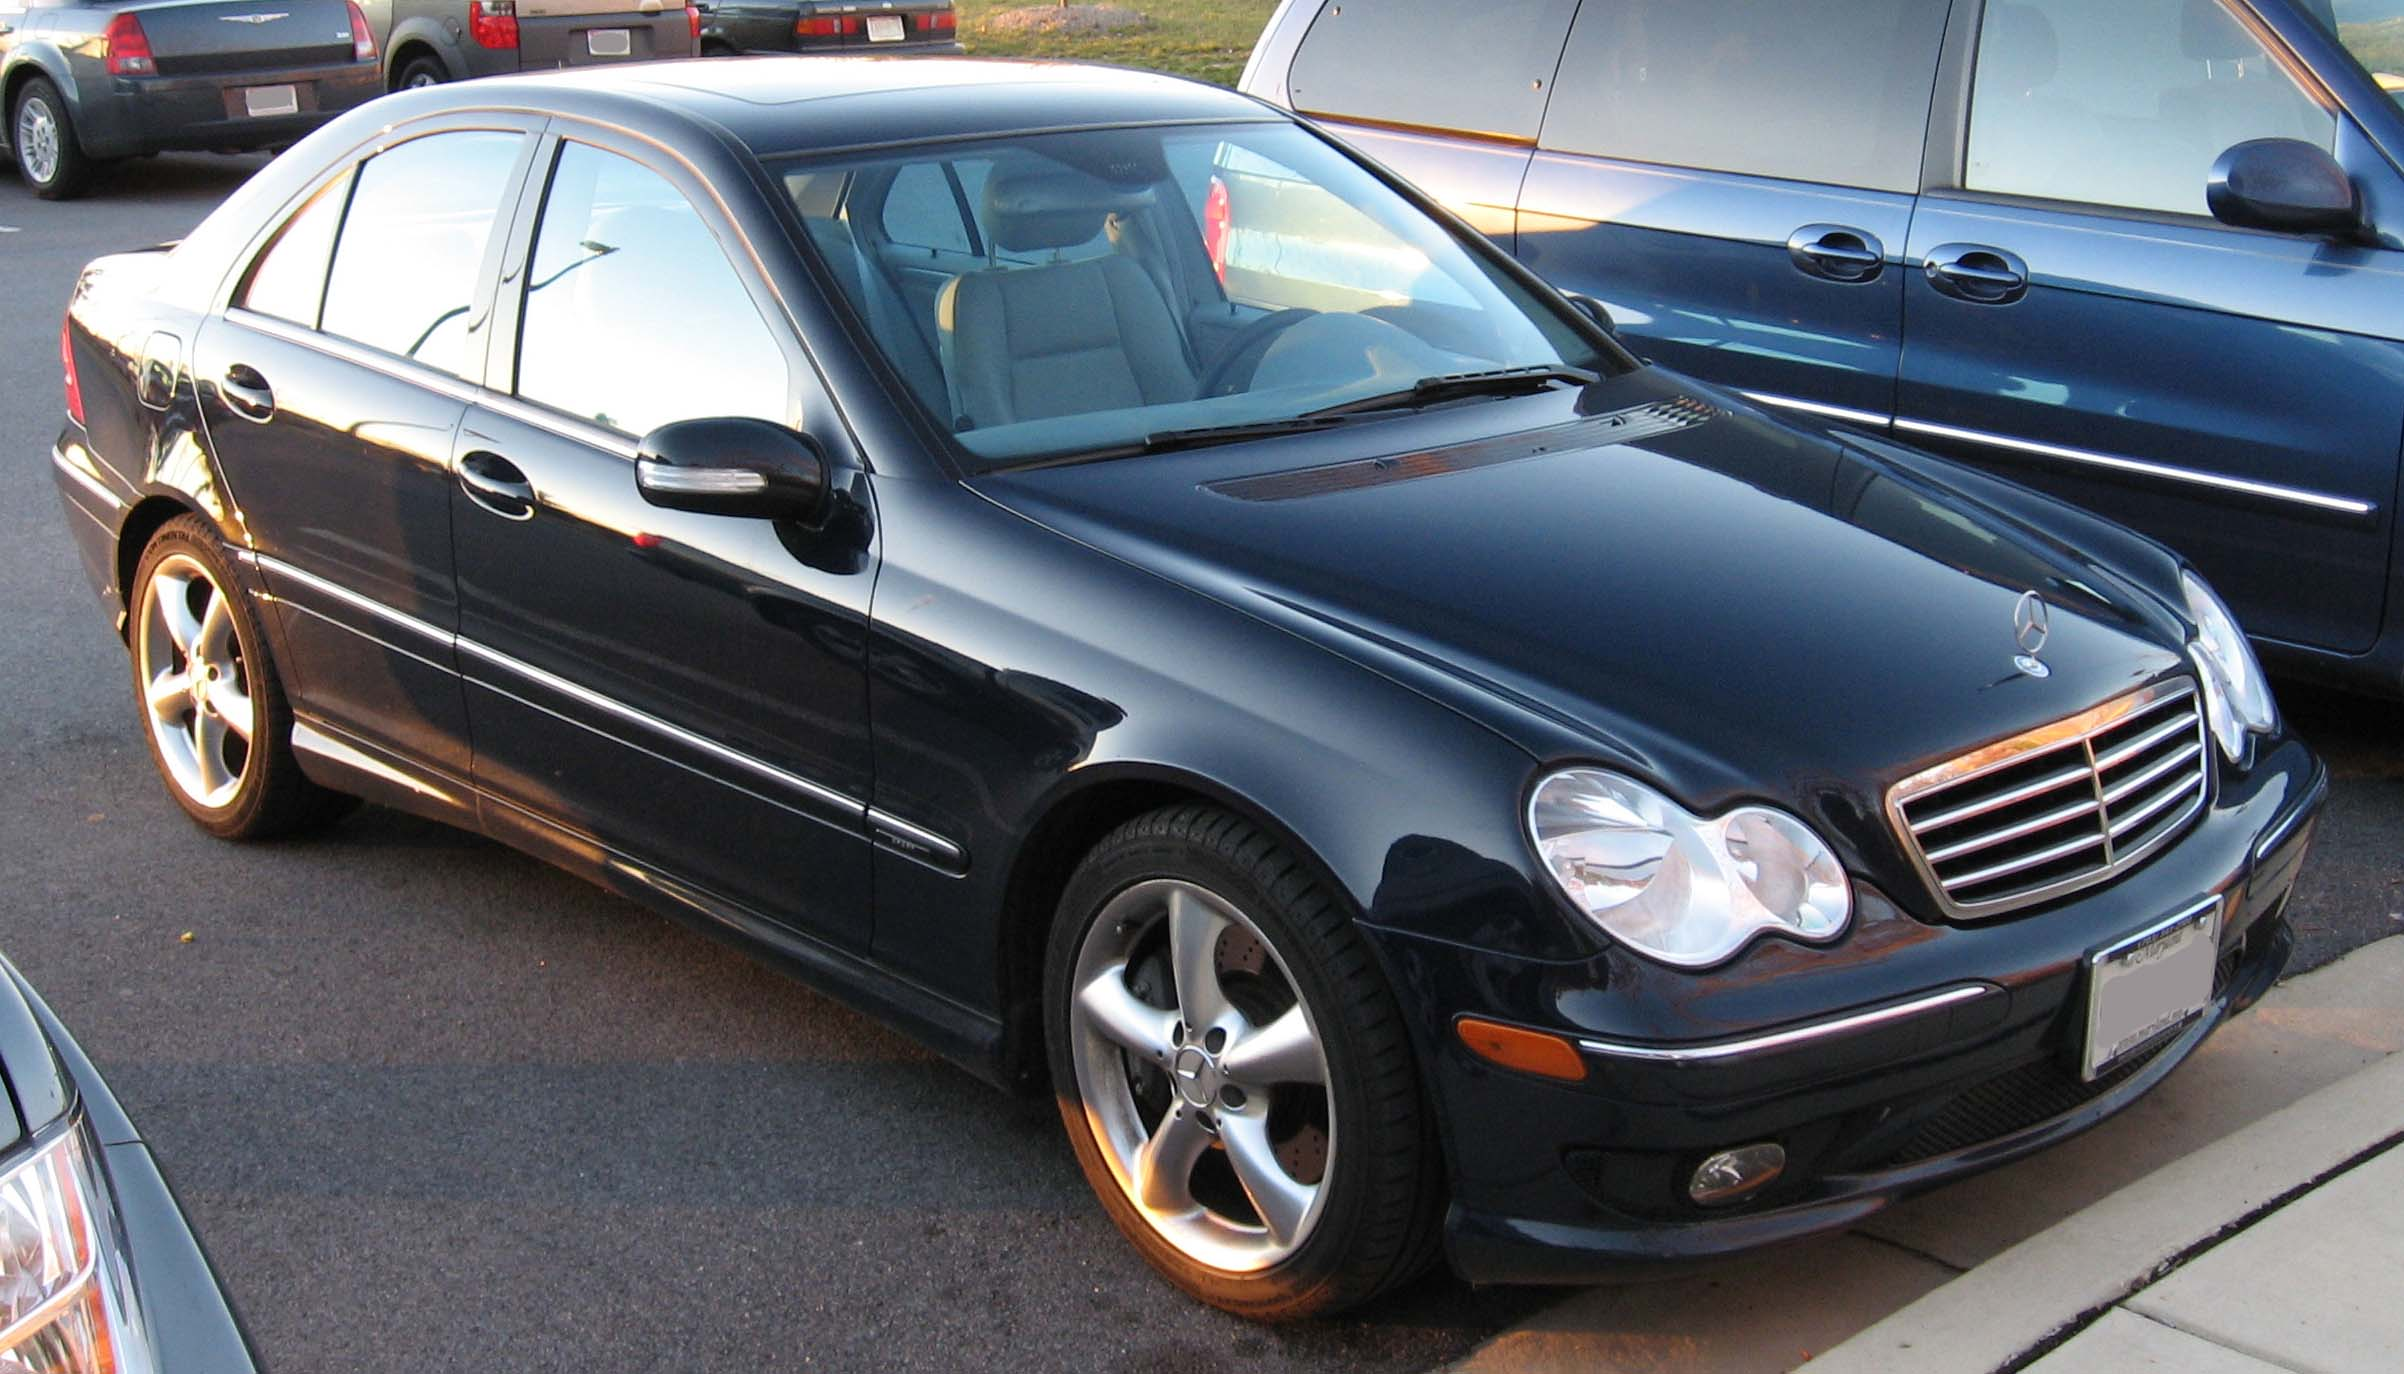 Mercedes benz c 230 technical details history photos on for Mercedes benz escondido parts